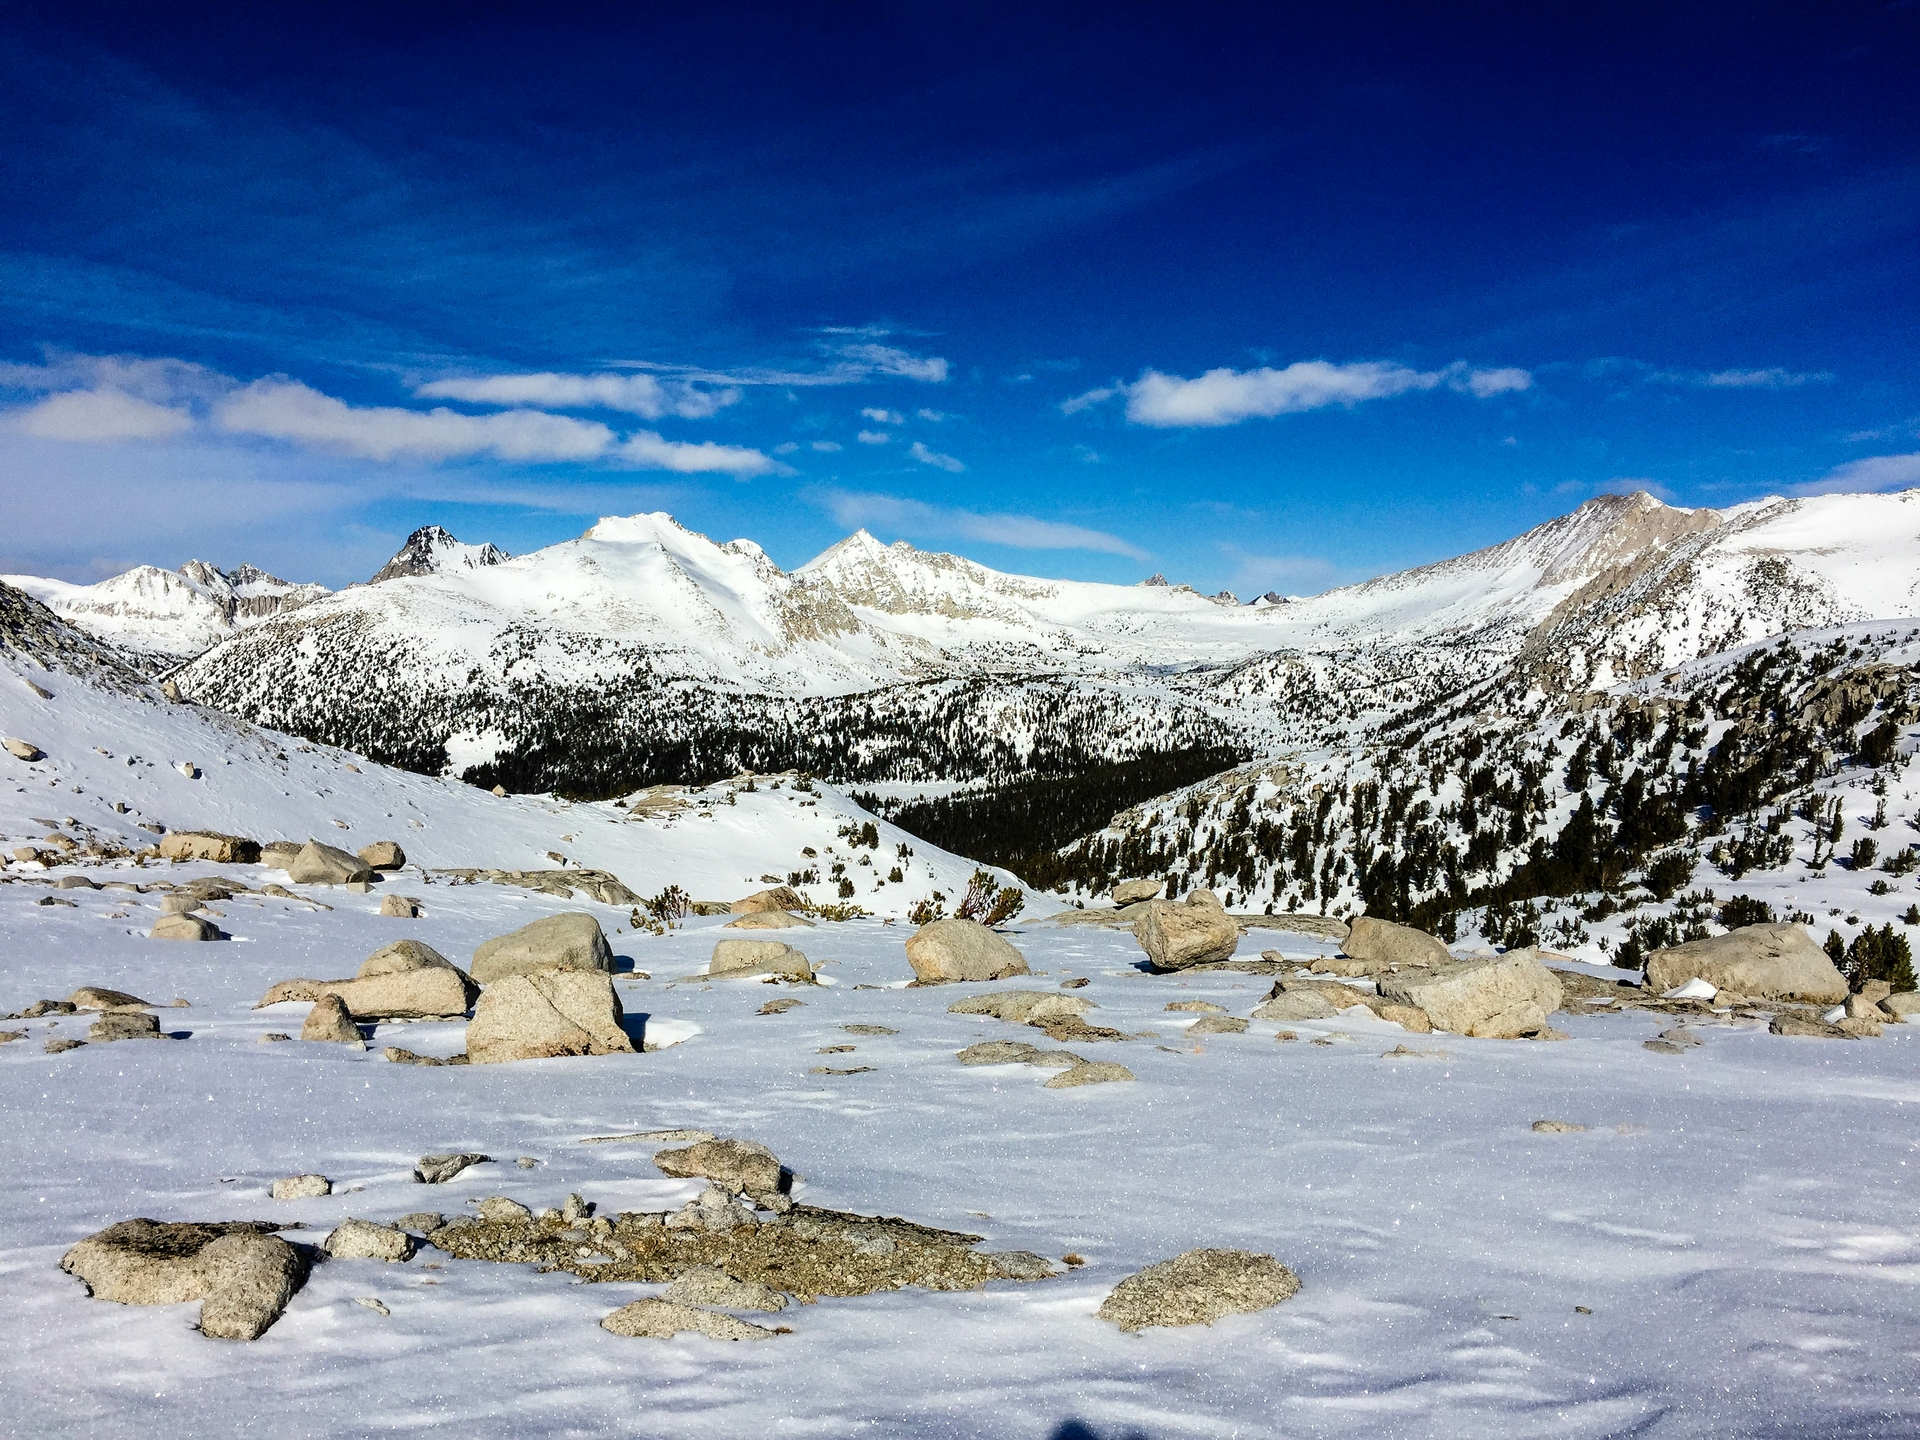 The view in late January from the Mono Pass snow course looking toward Pioneer Basin.